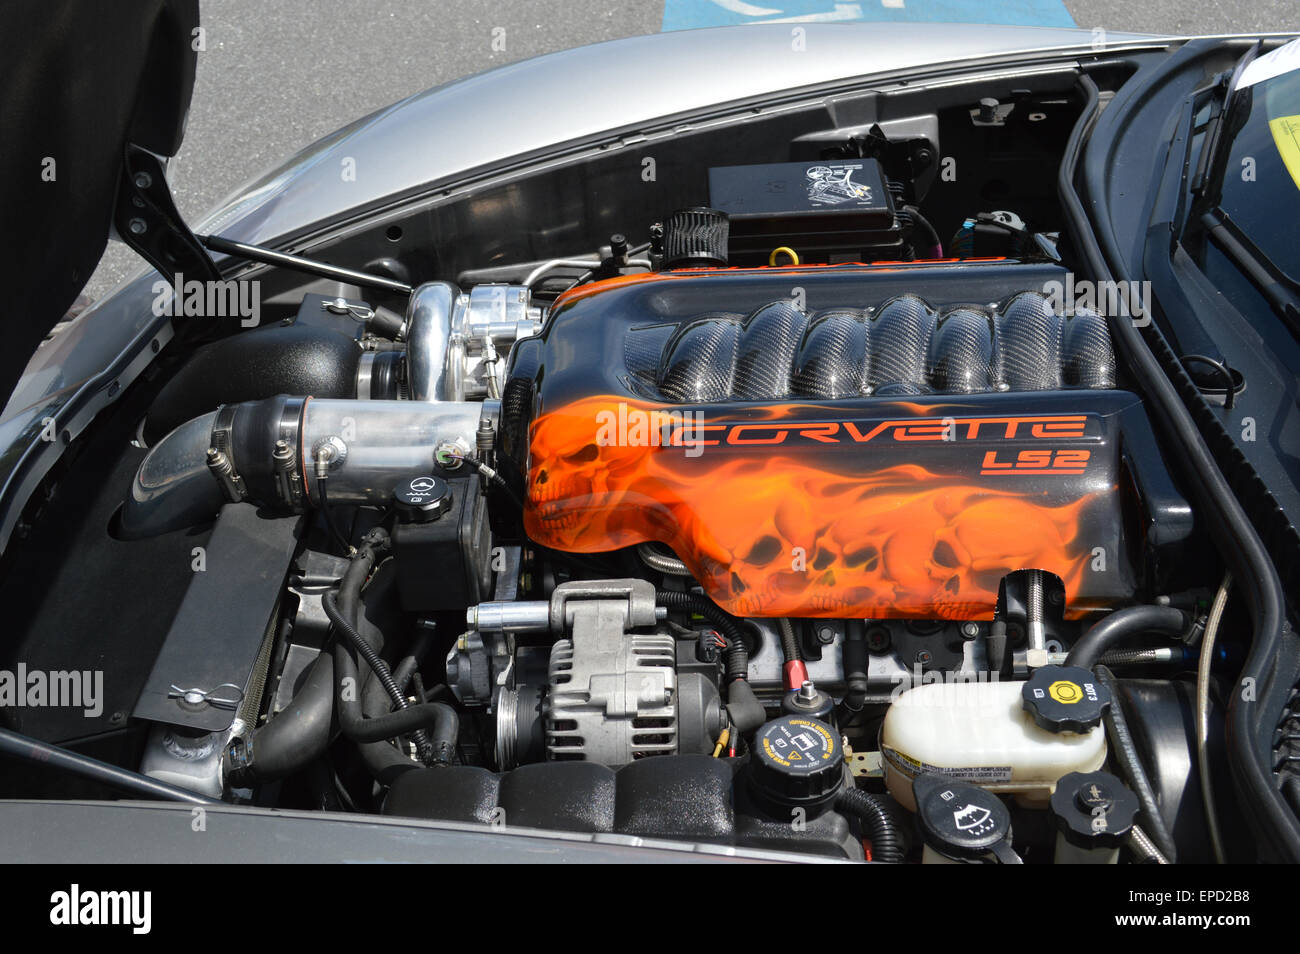 Supercharged Engine Stock Photos & Supercharged Engine Stock